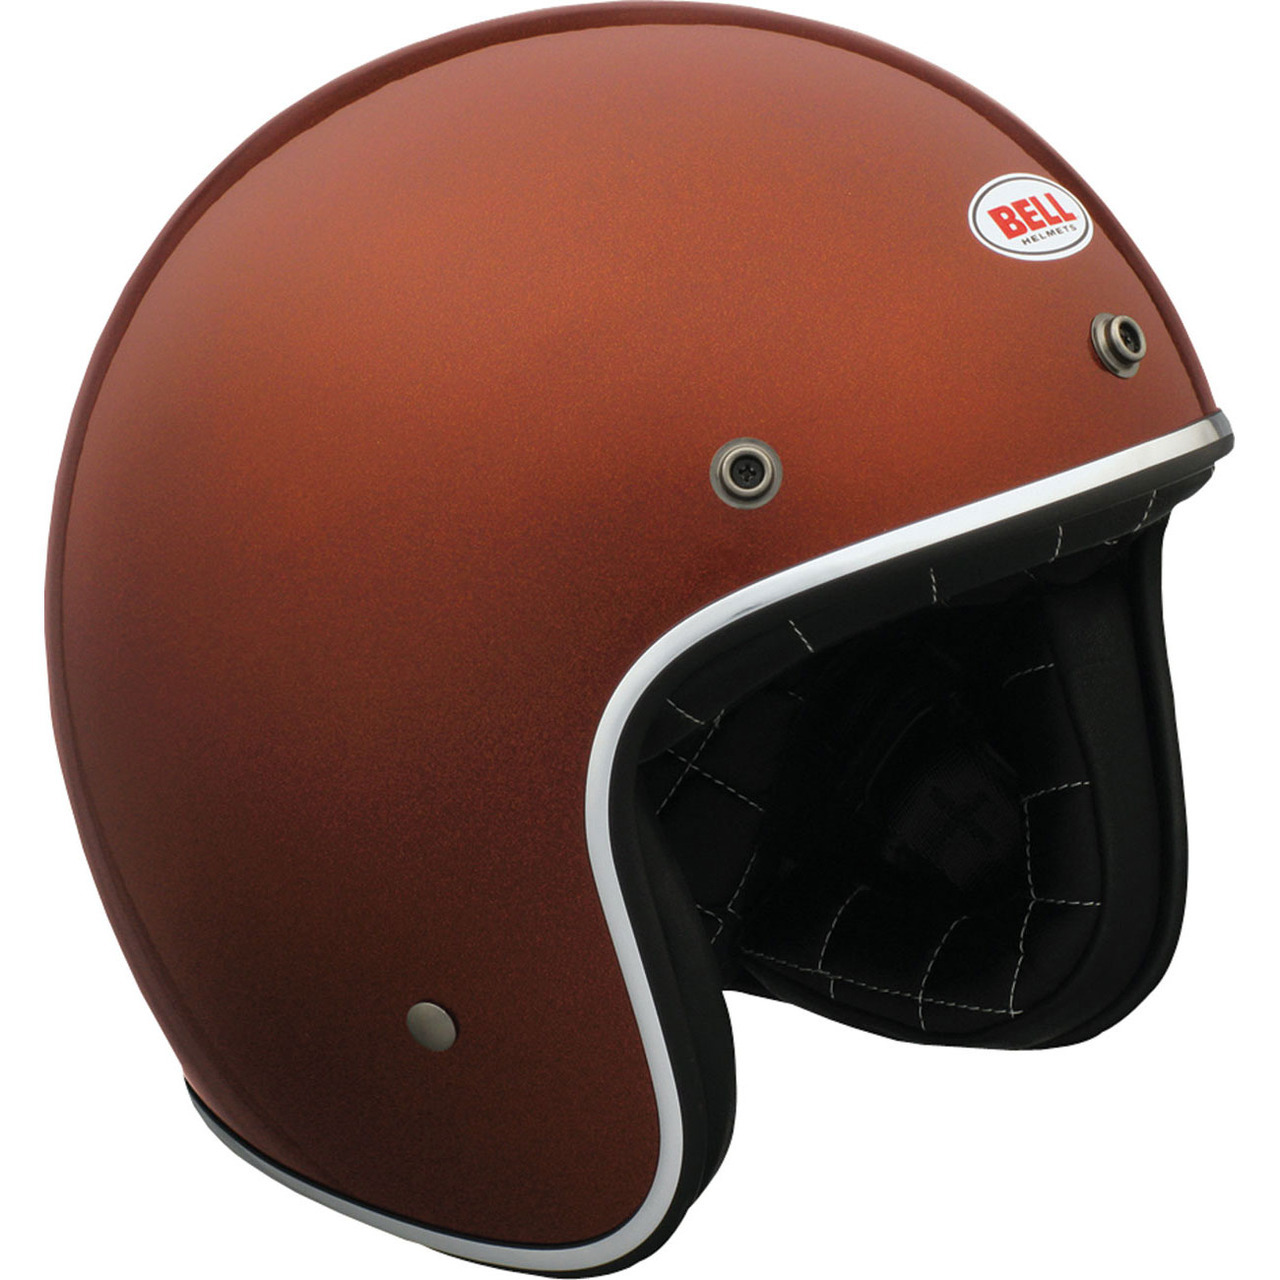 Sparkly orange motorcycle helmet on its way to me — hopefully delivered tomorrow so boyfriend and I can tool around town all weekend!